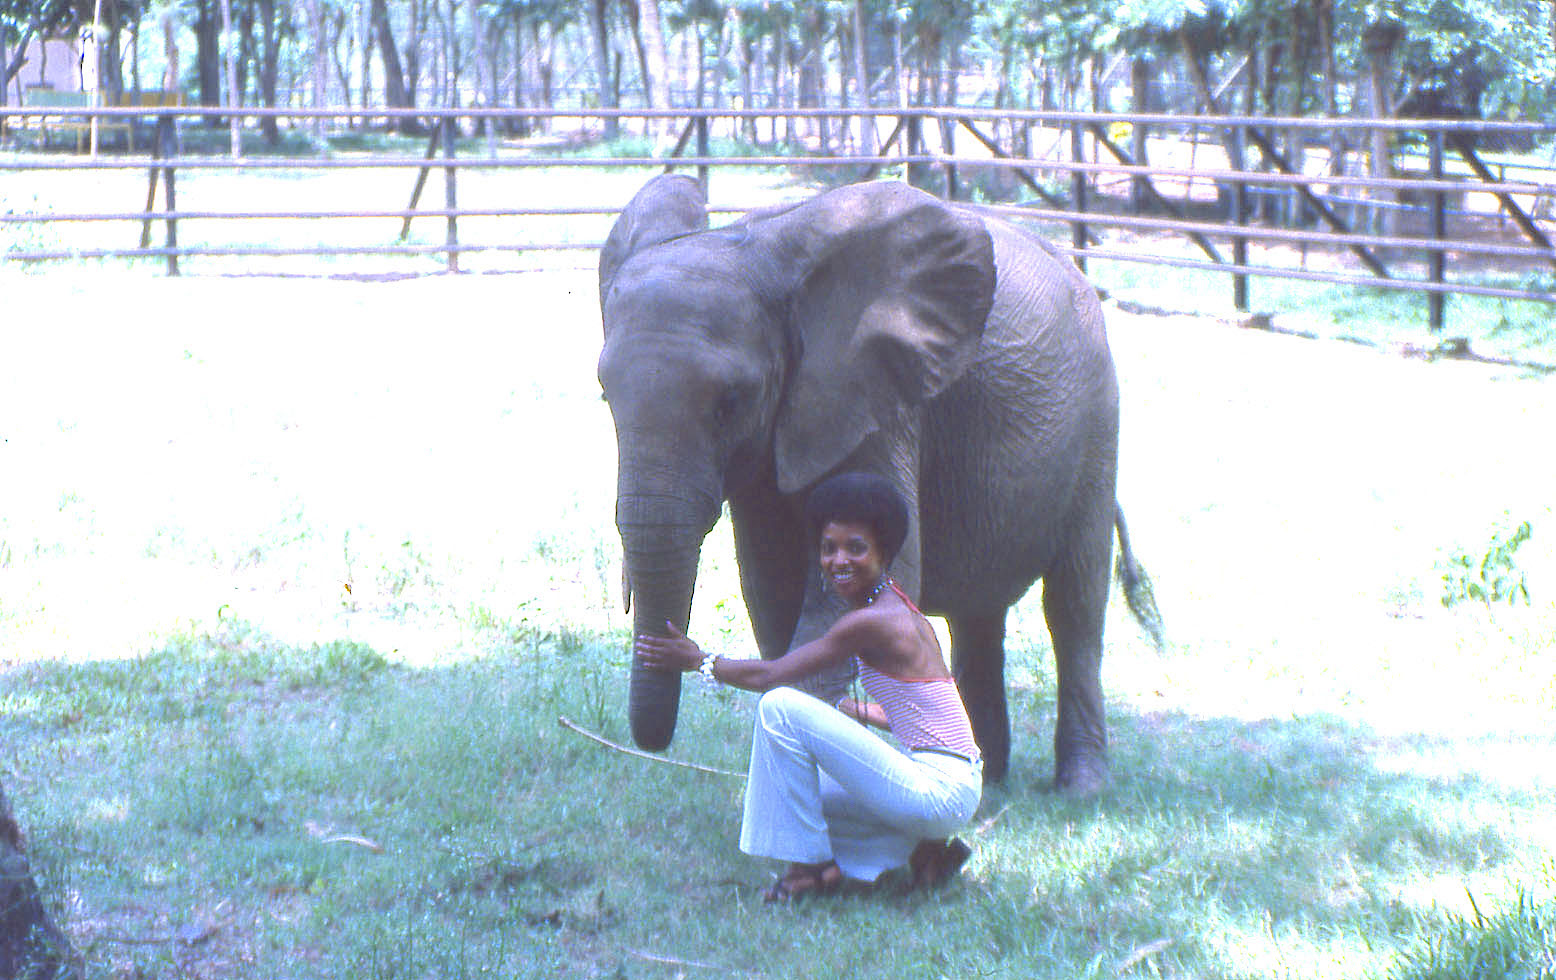 A photograph showing Golding posing with an elephant.